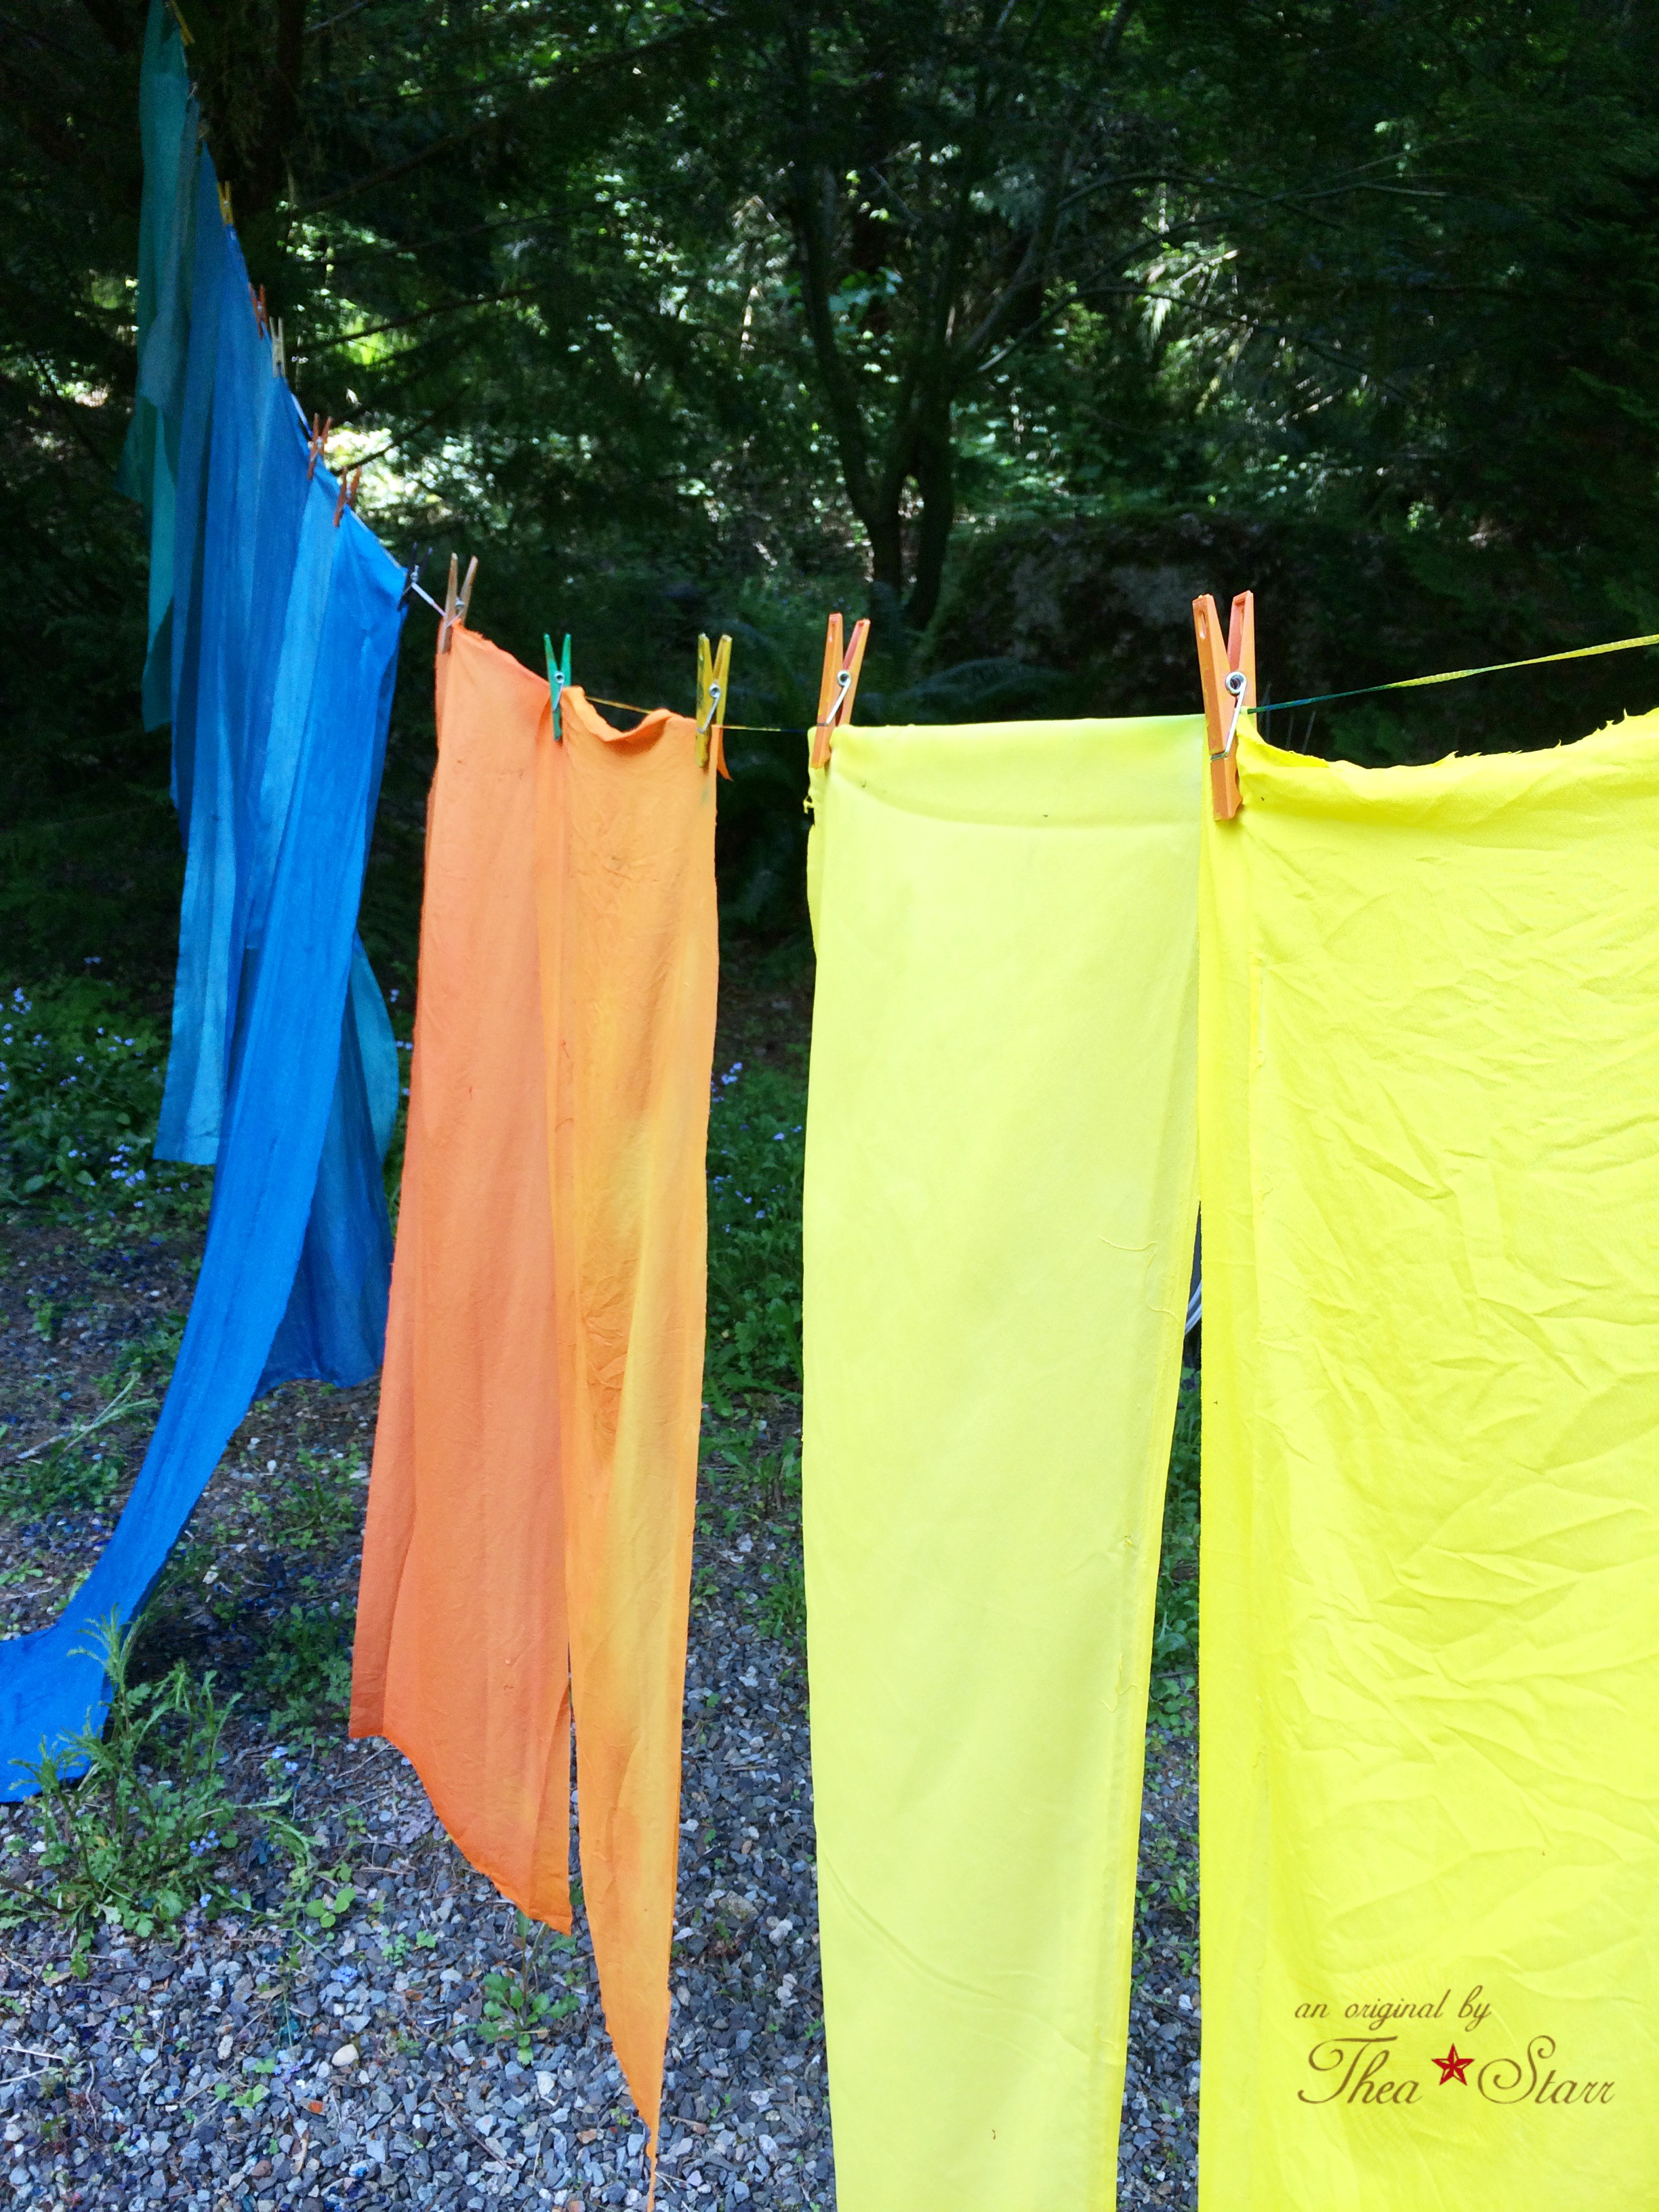 Thea Starr Hand Dyed Fabrics